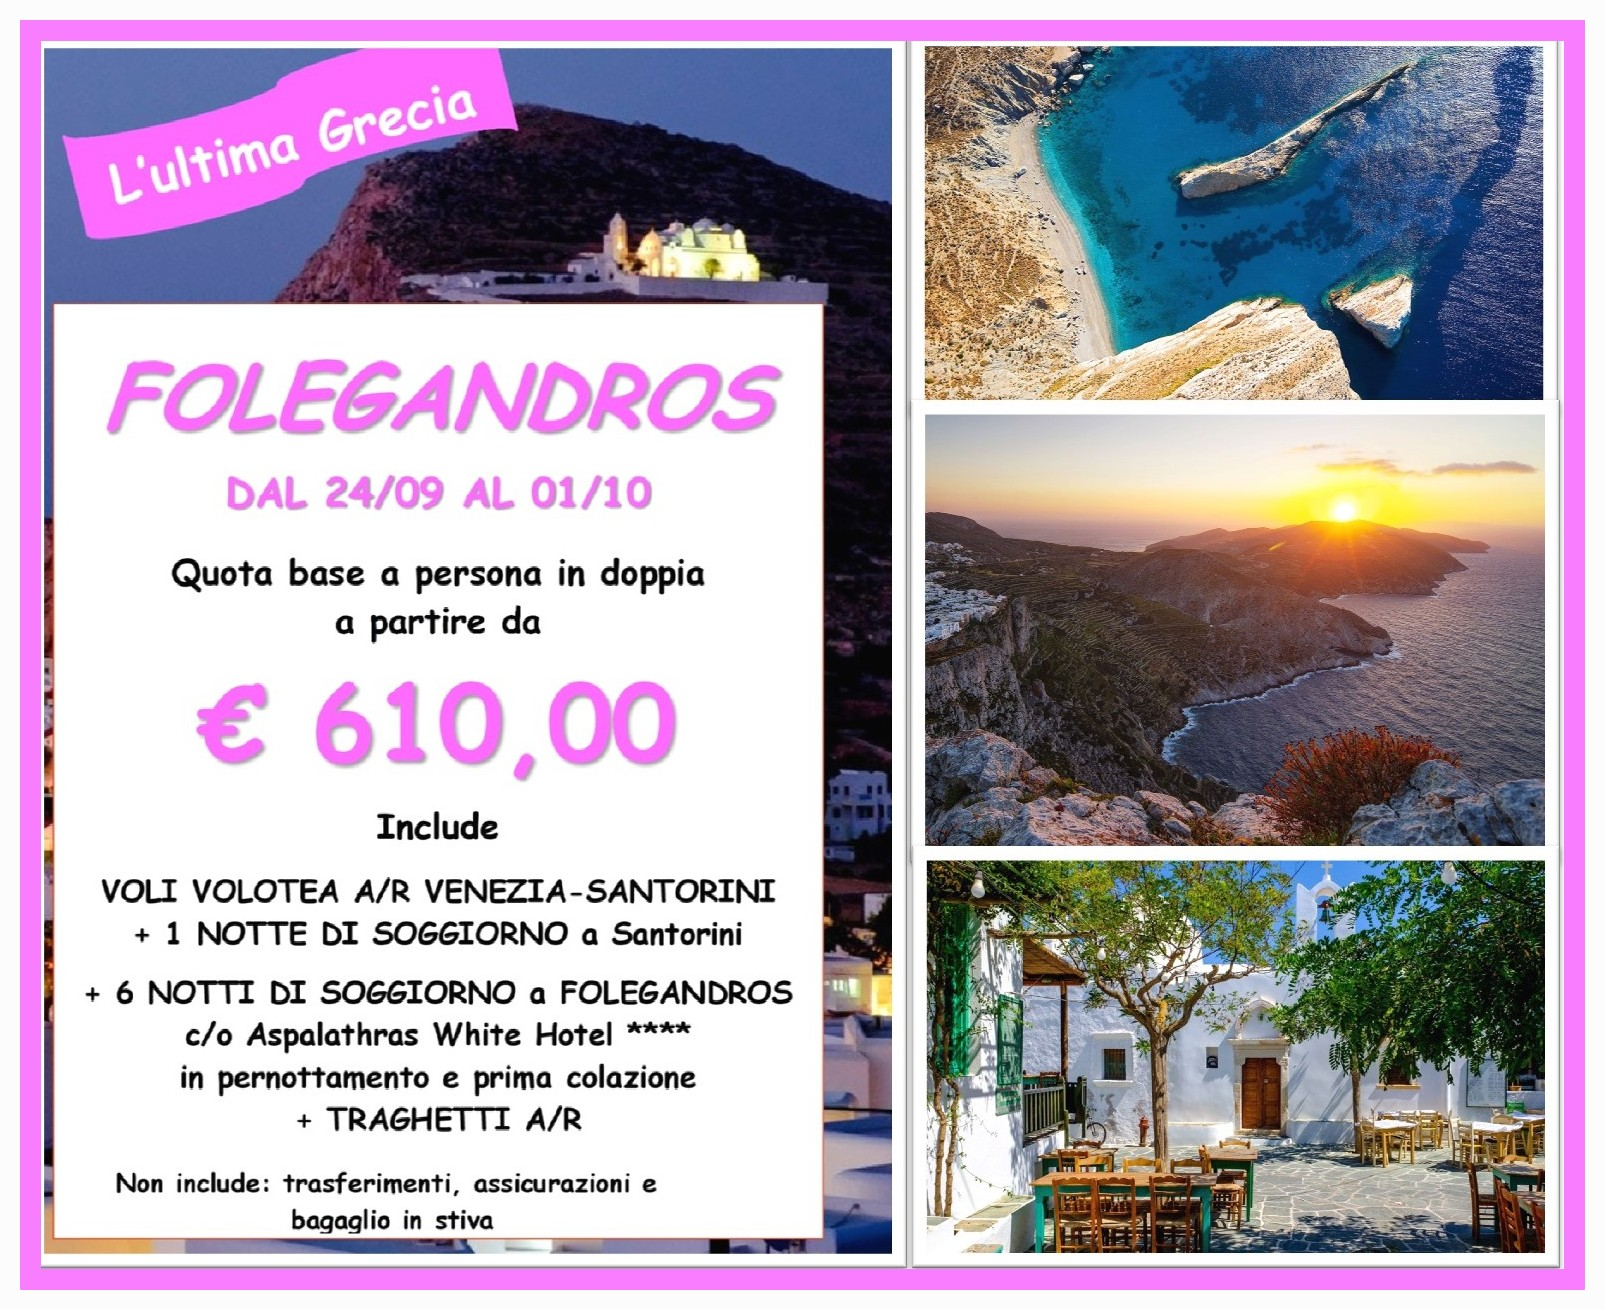 folegandros-collage